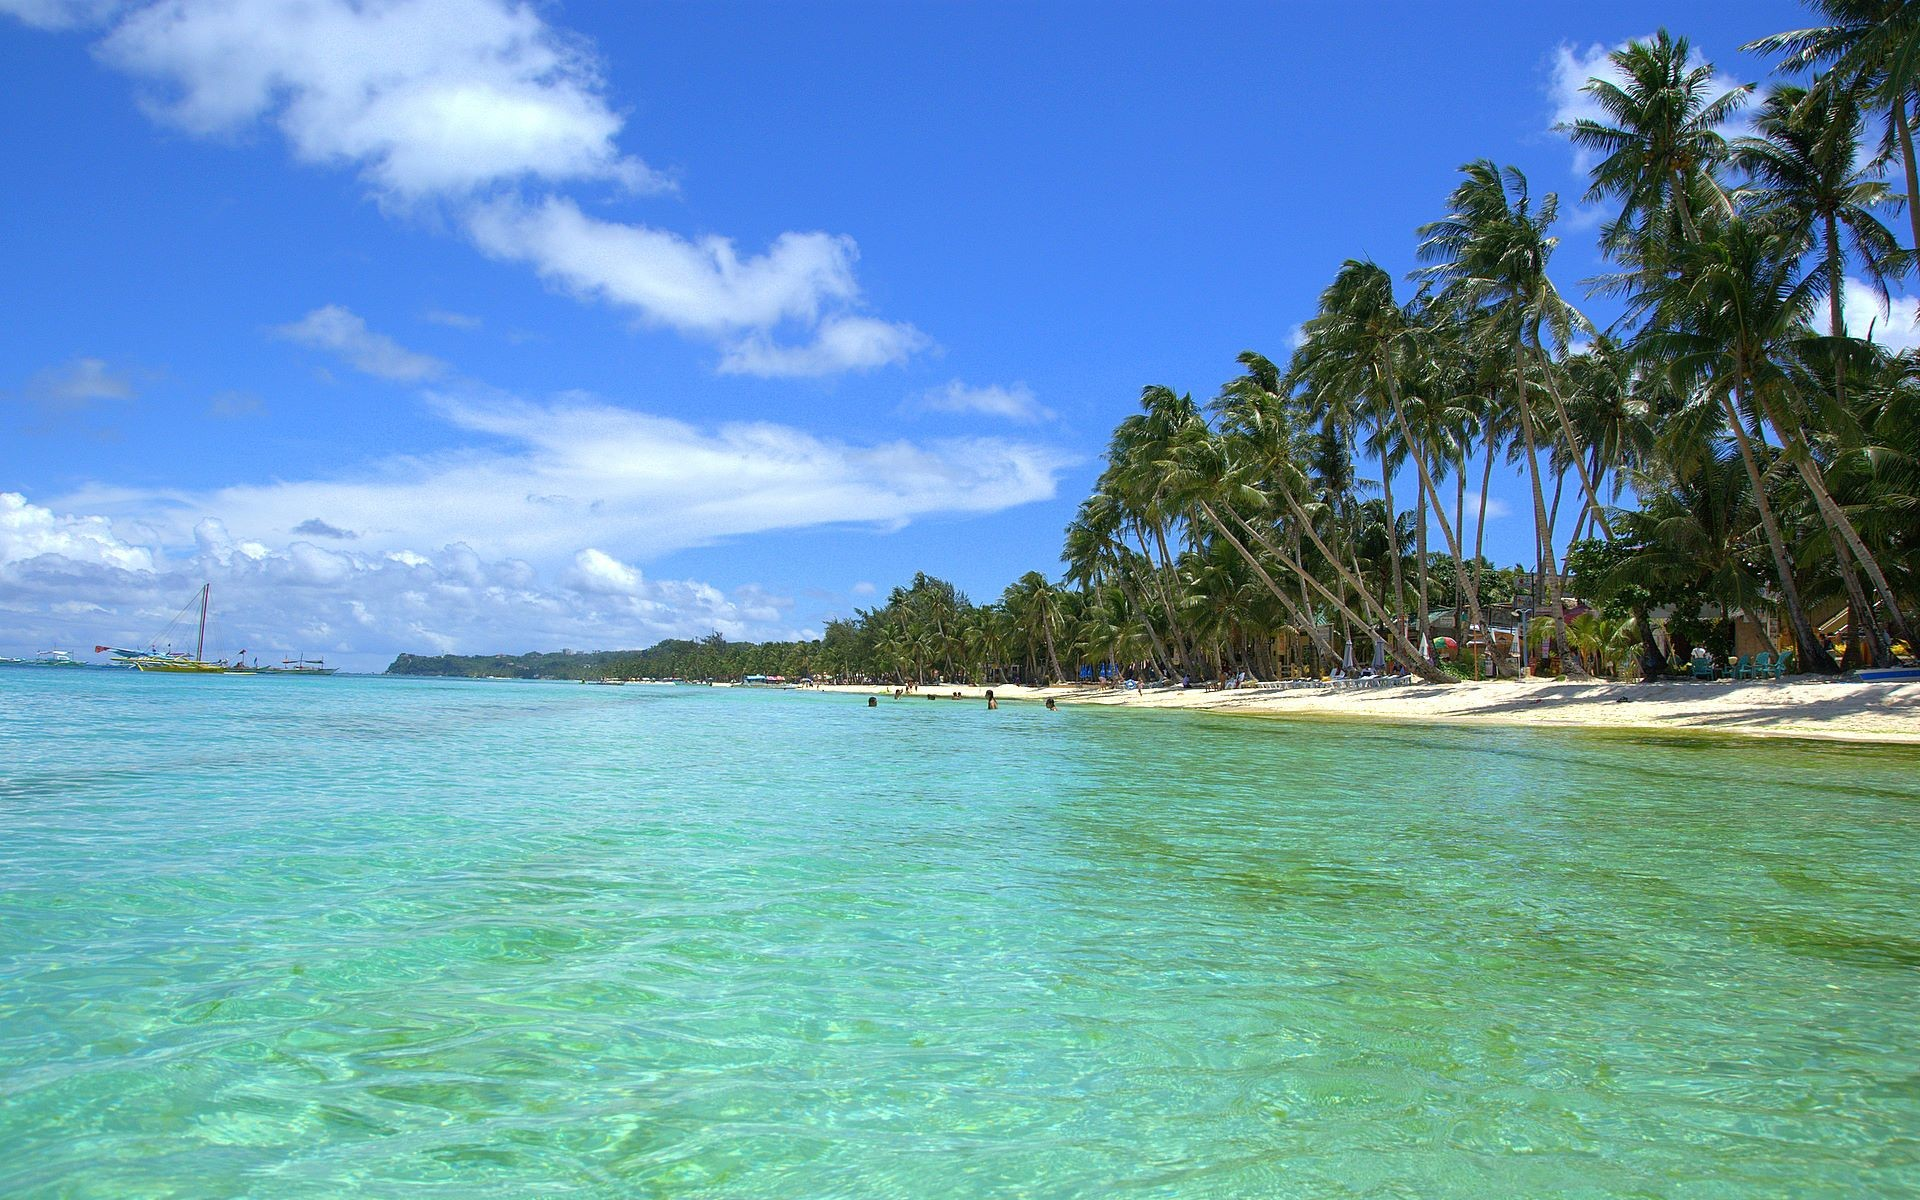 1920x1200 Here Is Tropical Beach Scenes Wallpaper And Images Gallery